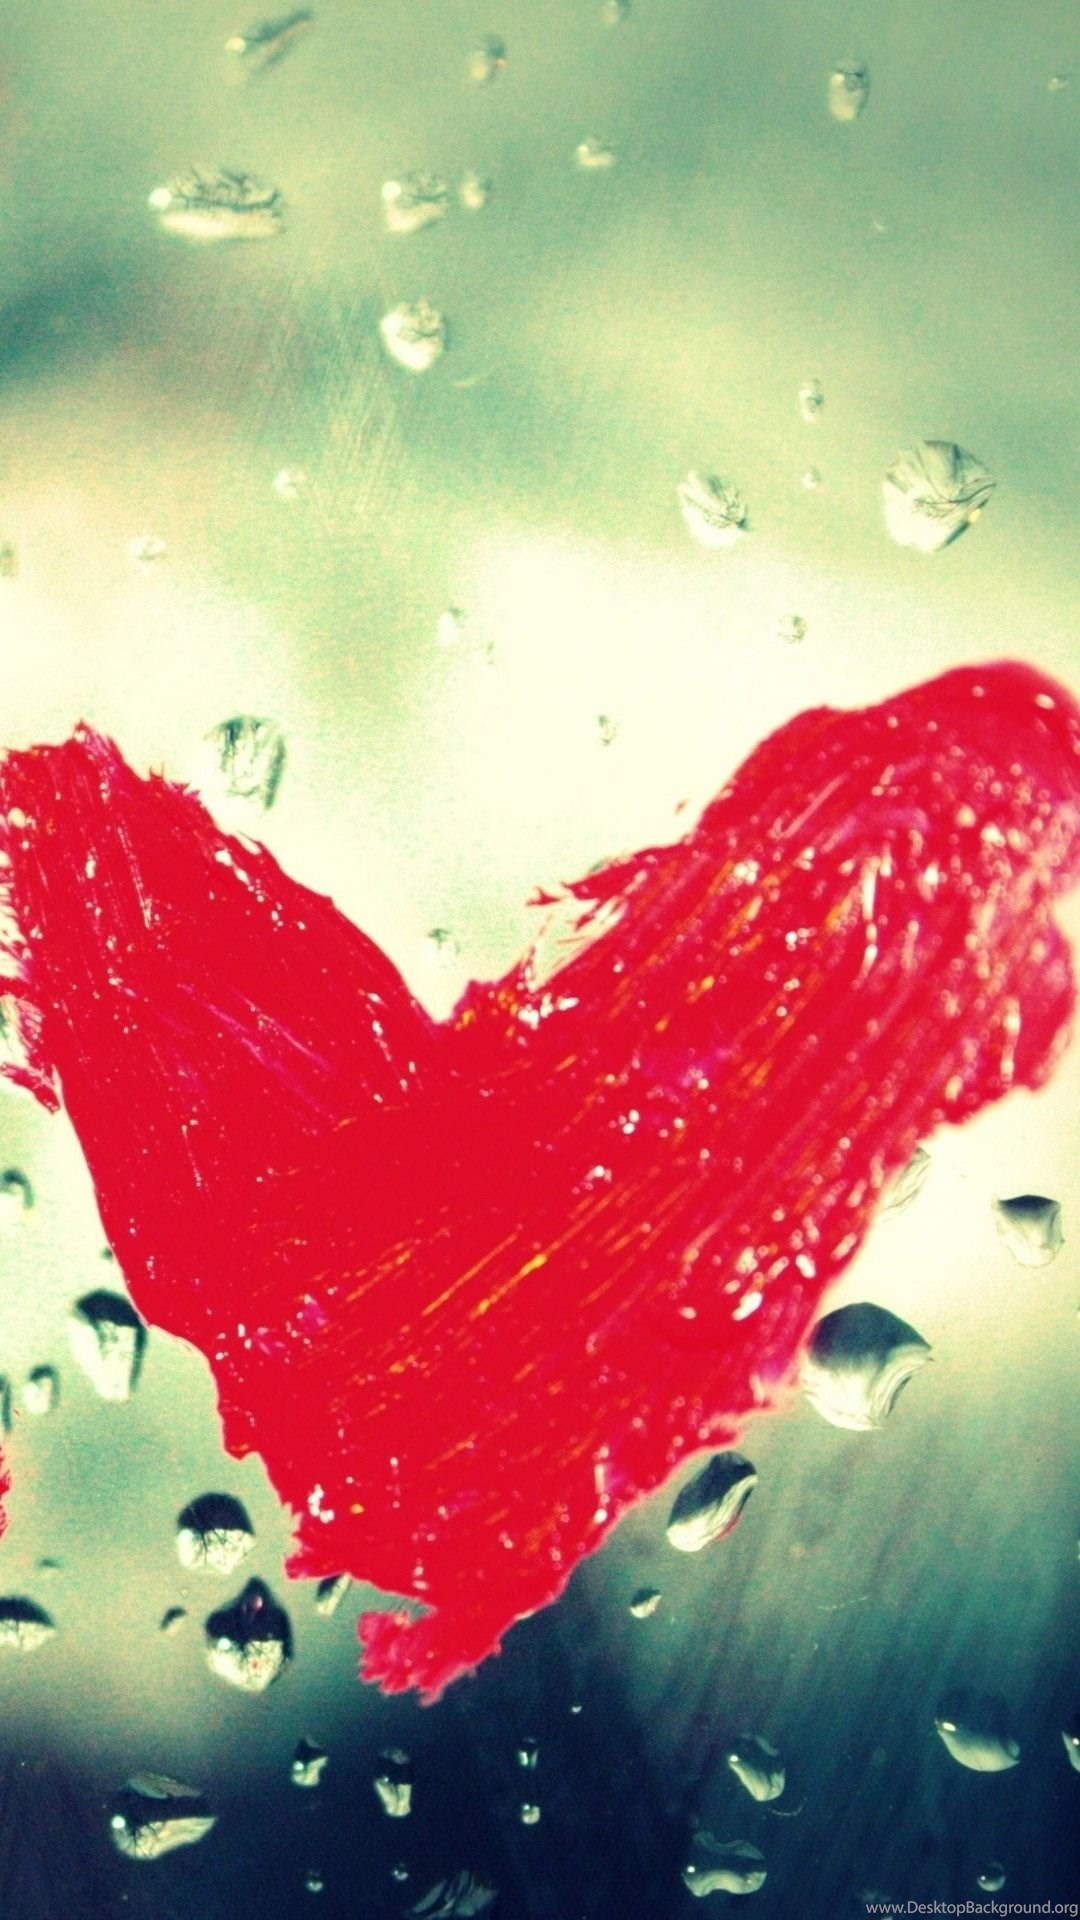 Sweet Love For Galaxy Note 3 Lock Screen Wallpapers Android